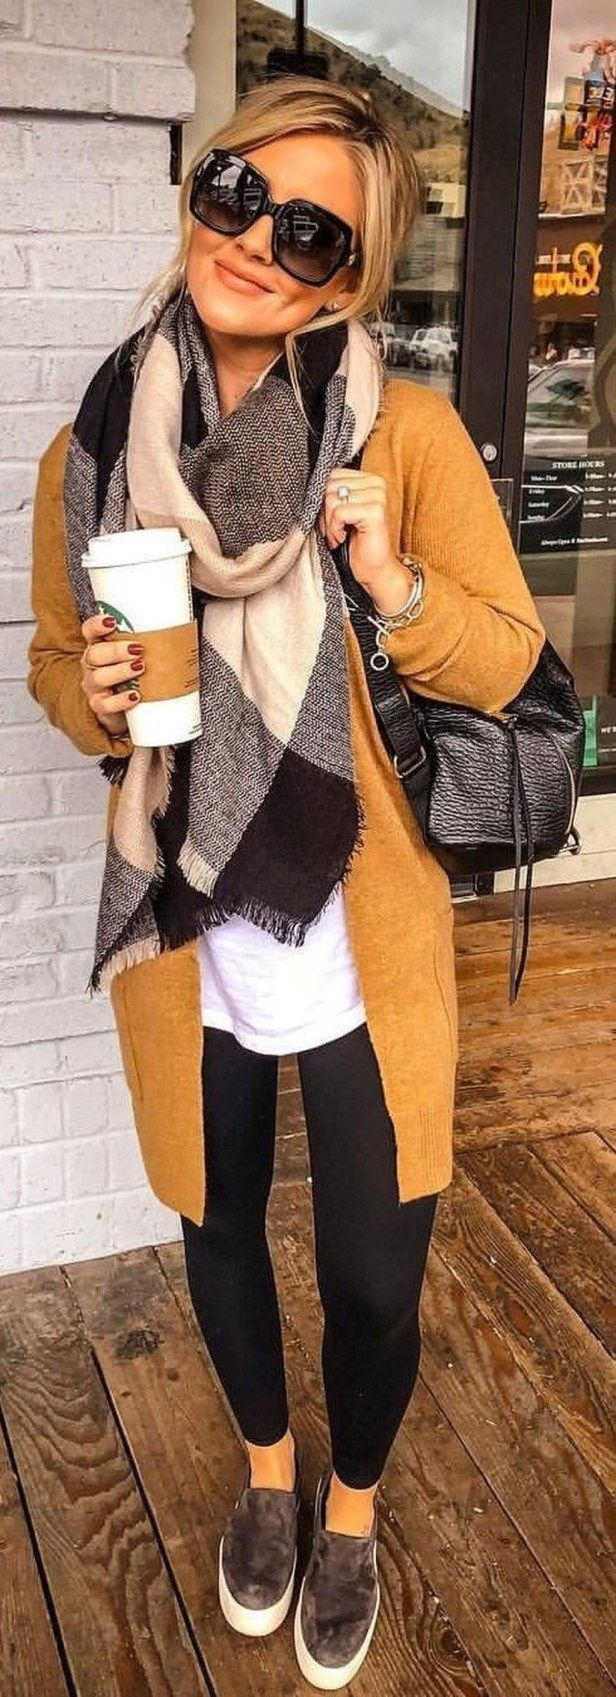 40+ Modern Outfits Ideas For Women That Will Make You Look Cool 40+ Modern Outfits Ideas For Women That Will Make You Look Cool Woman Dresses woman getting dressed